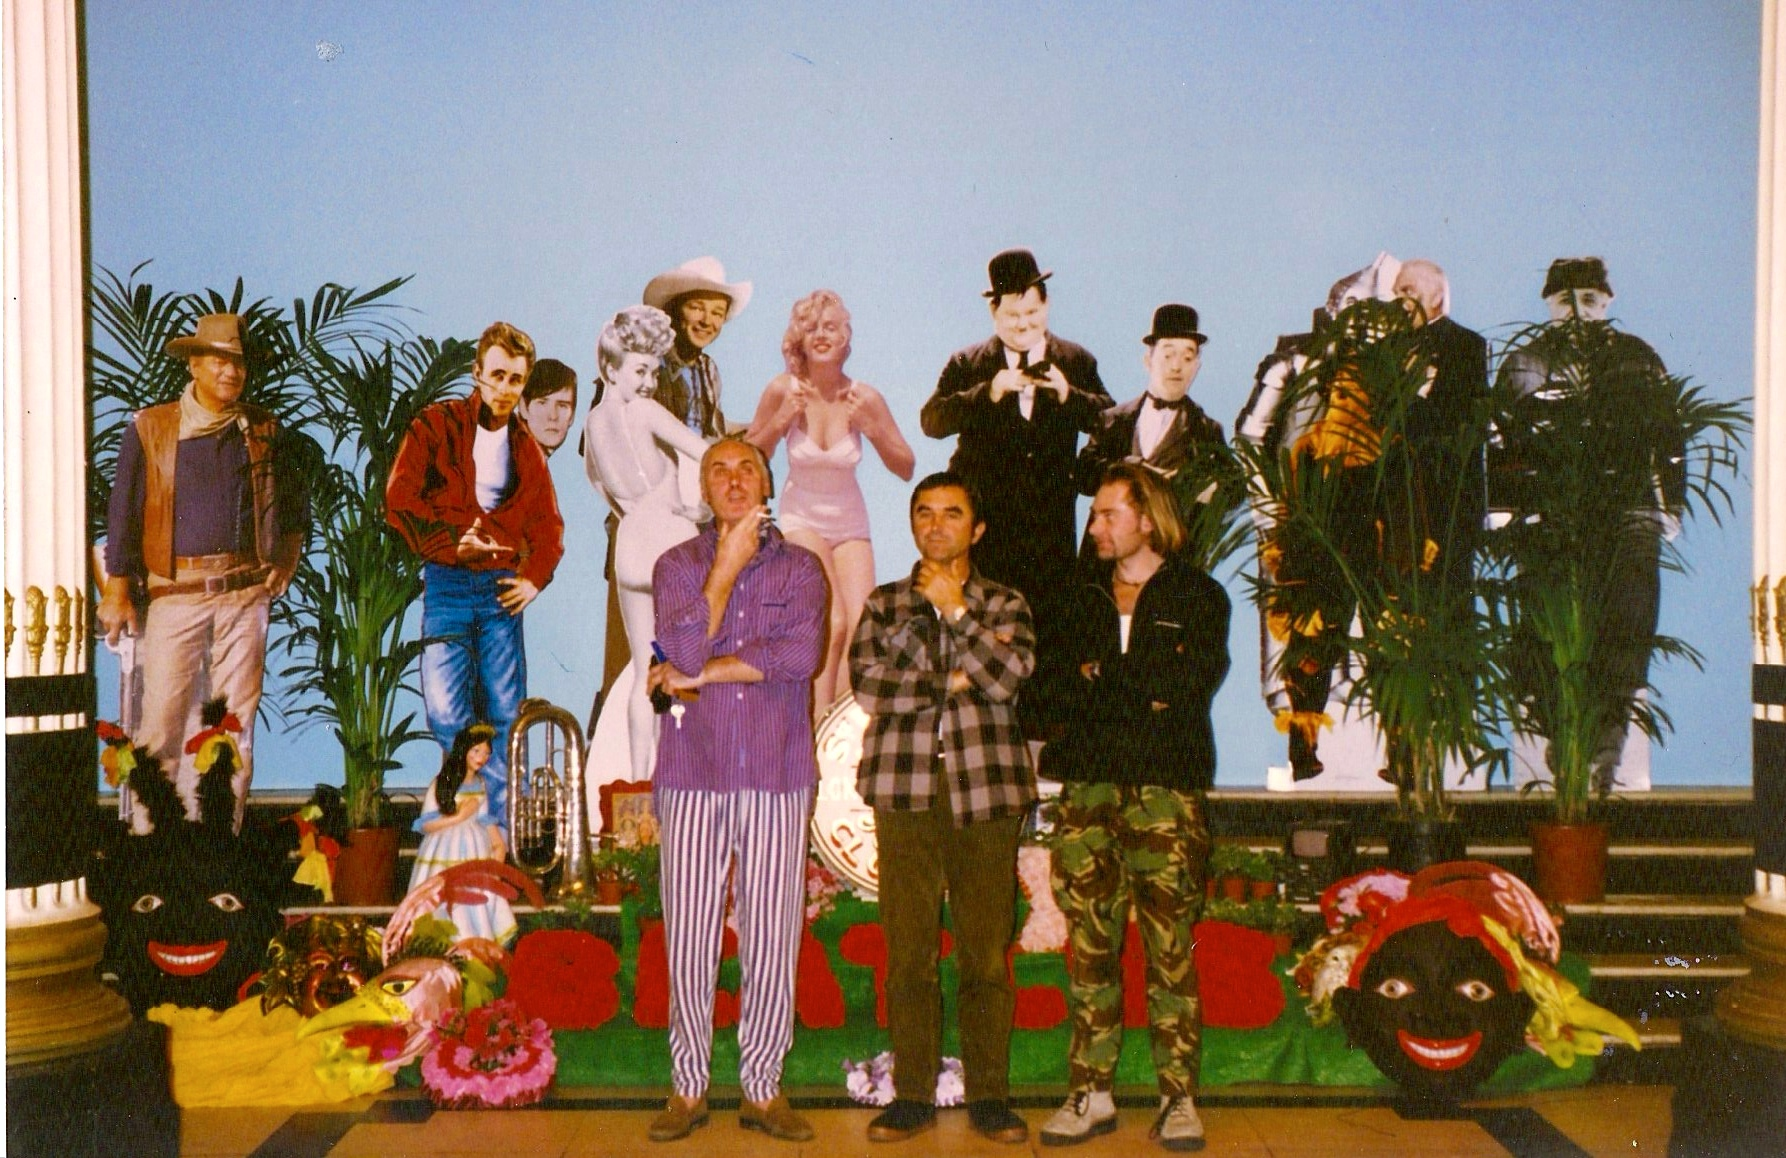 FREE AS A BIRD : SGT. PEPPER'S LONELY HEARTS CLUB ALBUM COVER RECREATION IN ADELPHI HOTEL.